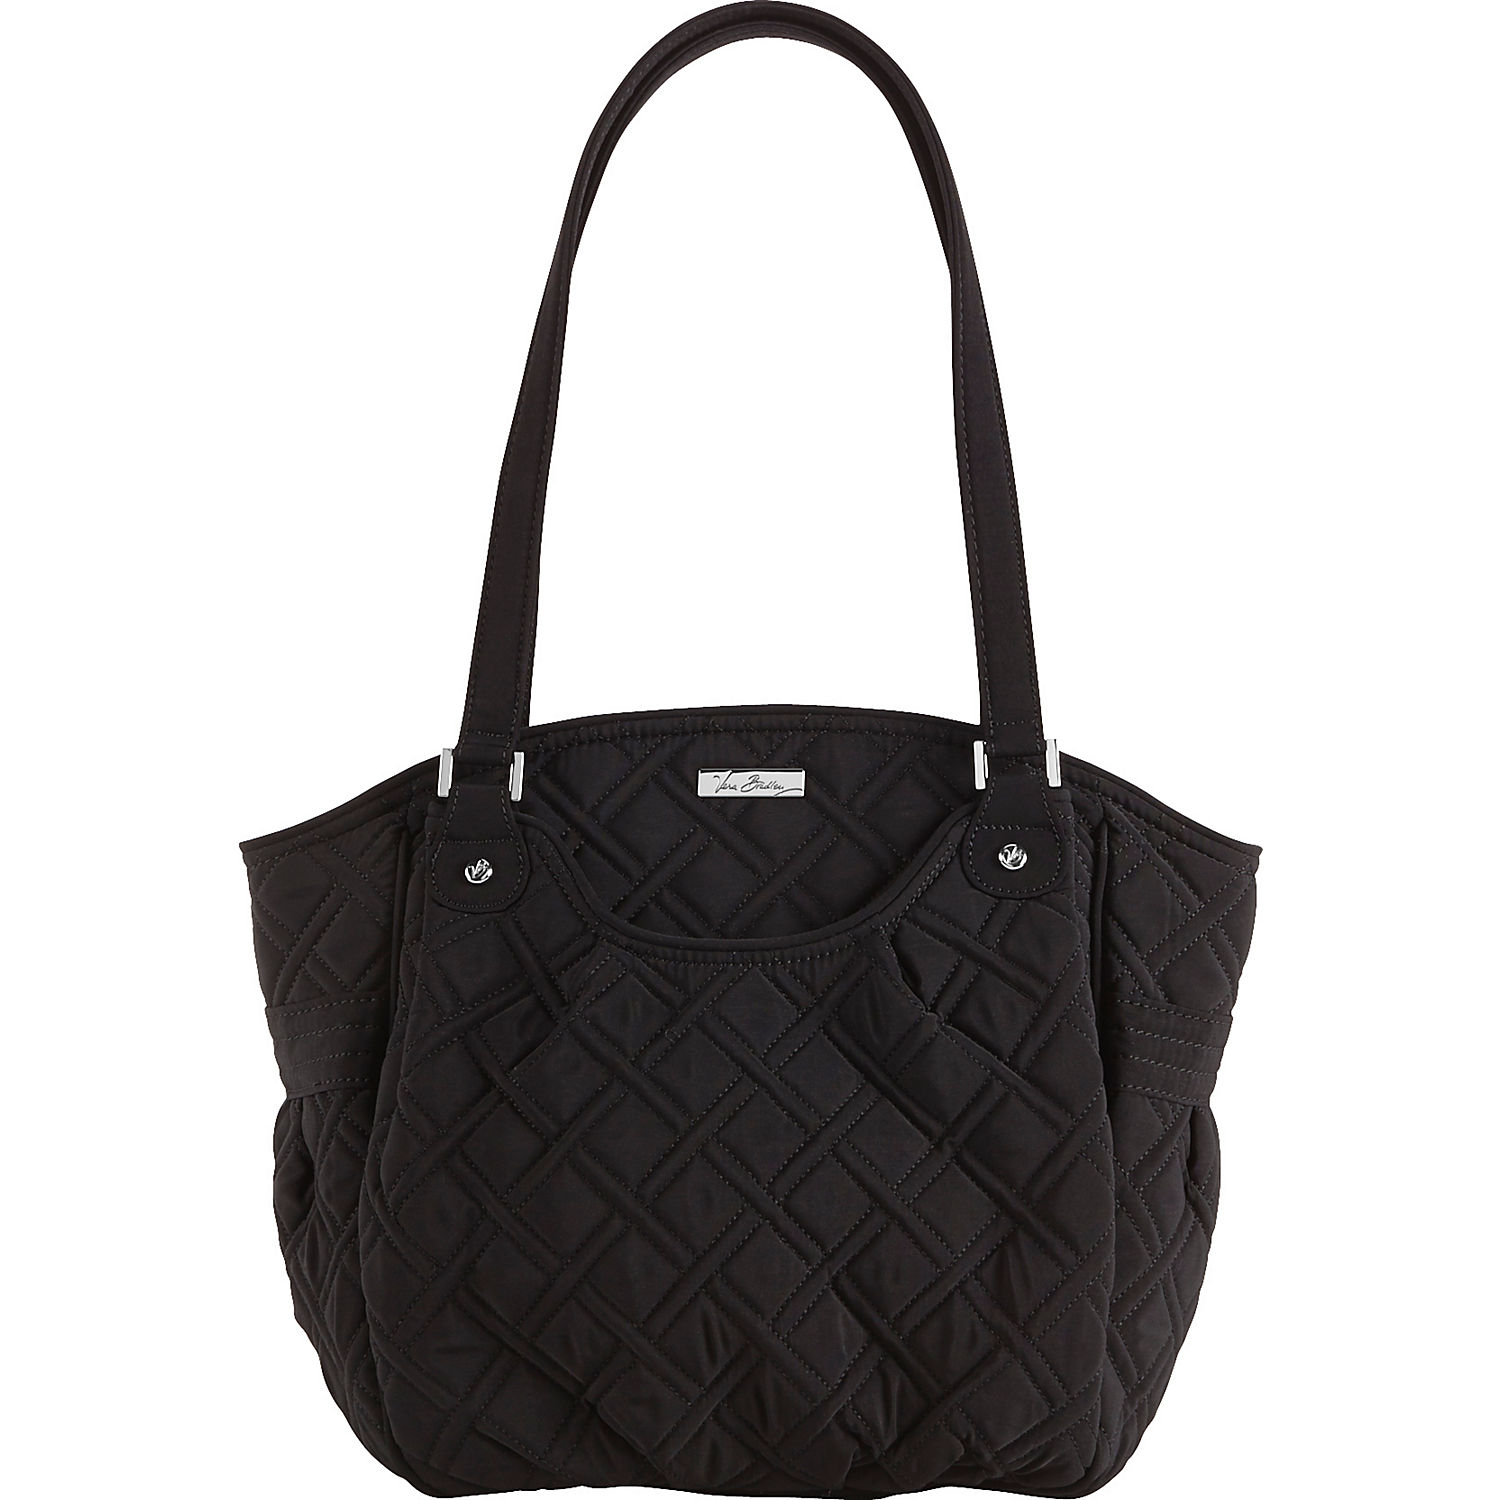 Find great deals on eBay for cheap vera bradley totes. Shop with confidence.